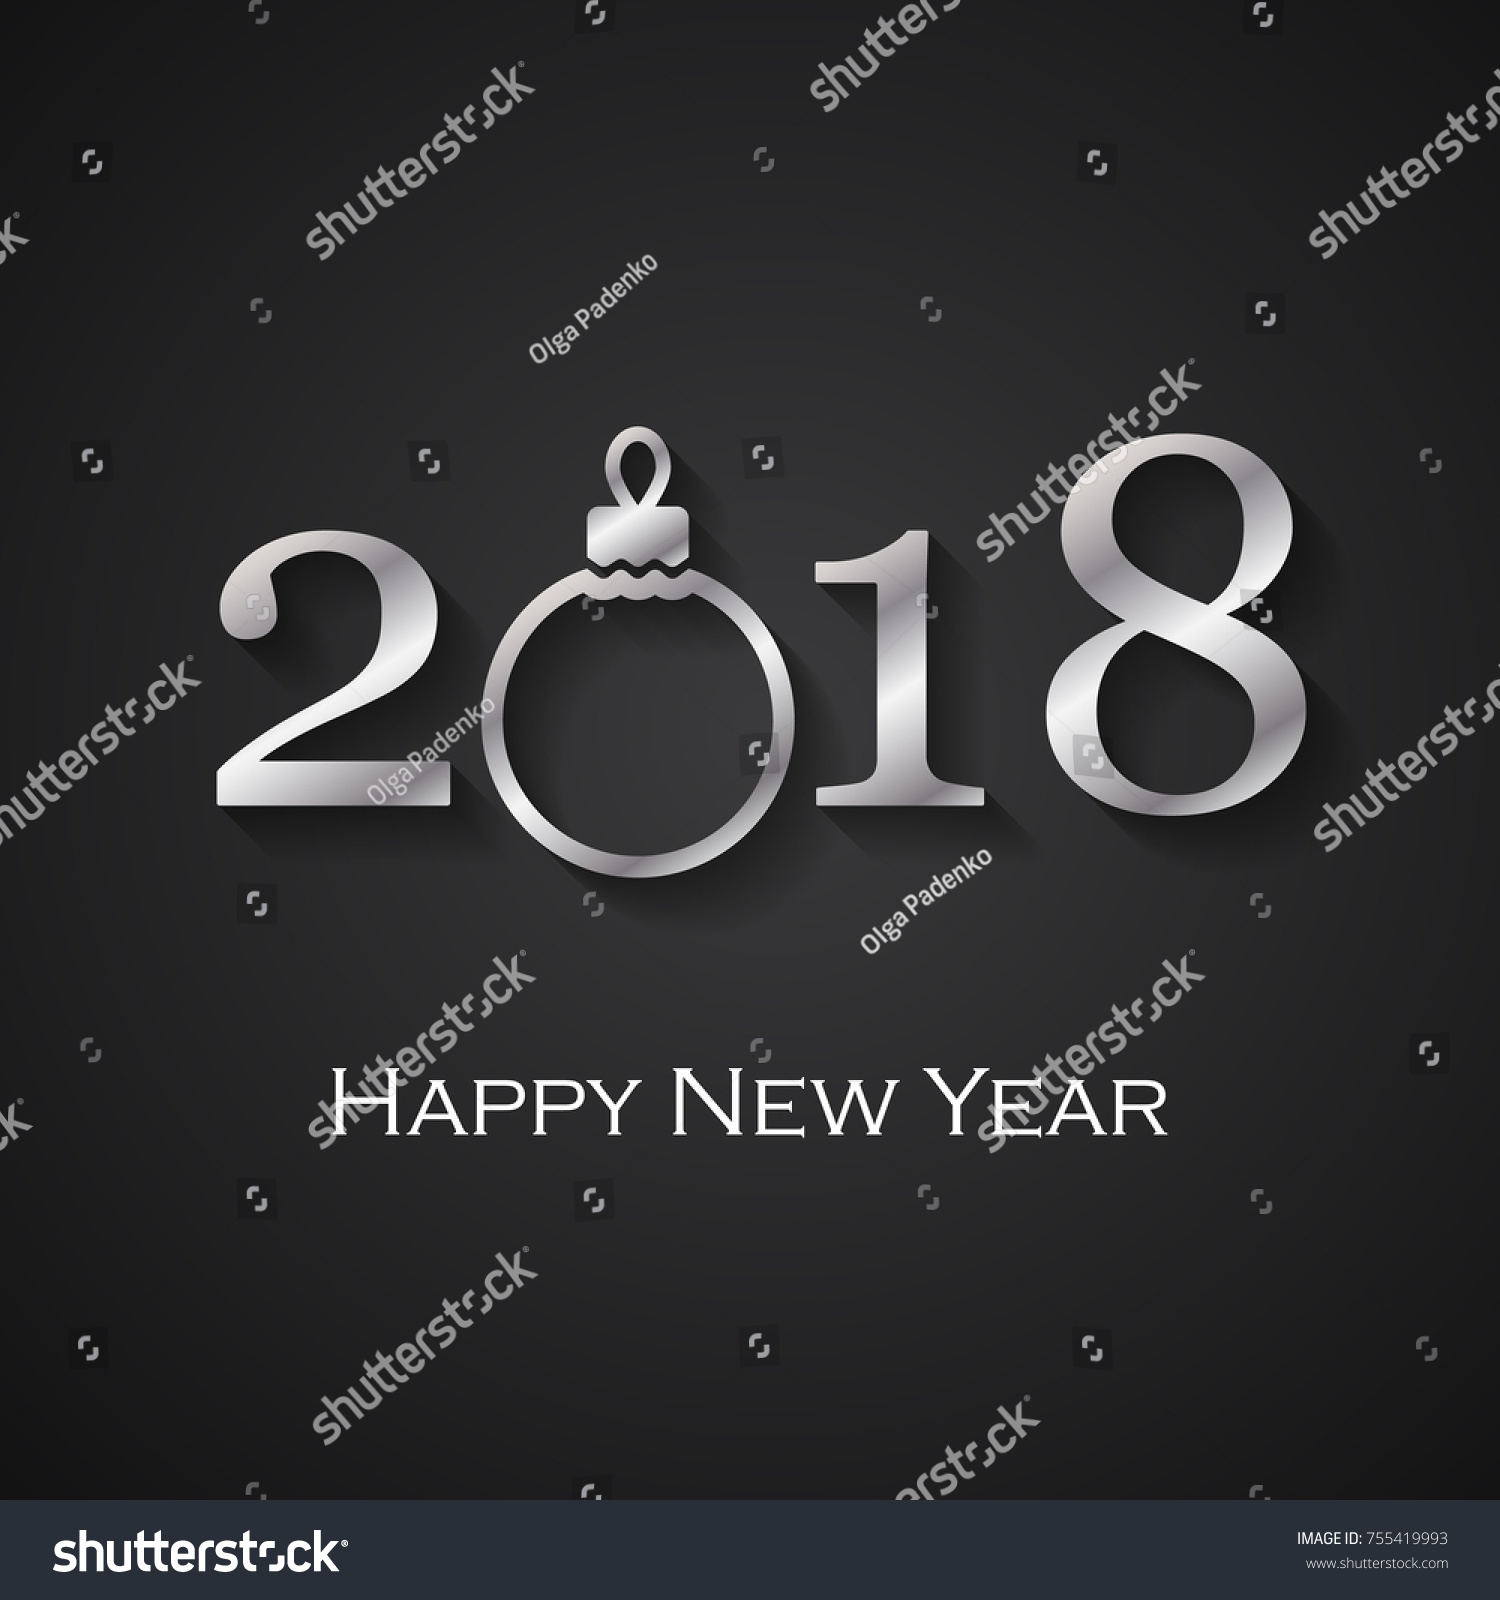 2018 Happy New Year Black Greeting Stock Vector Royalty Free